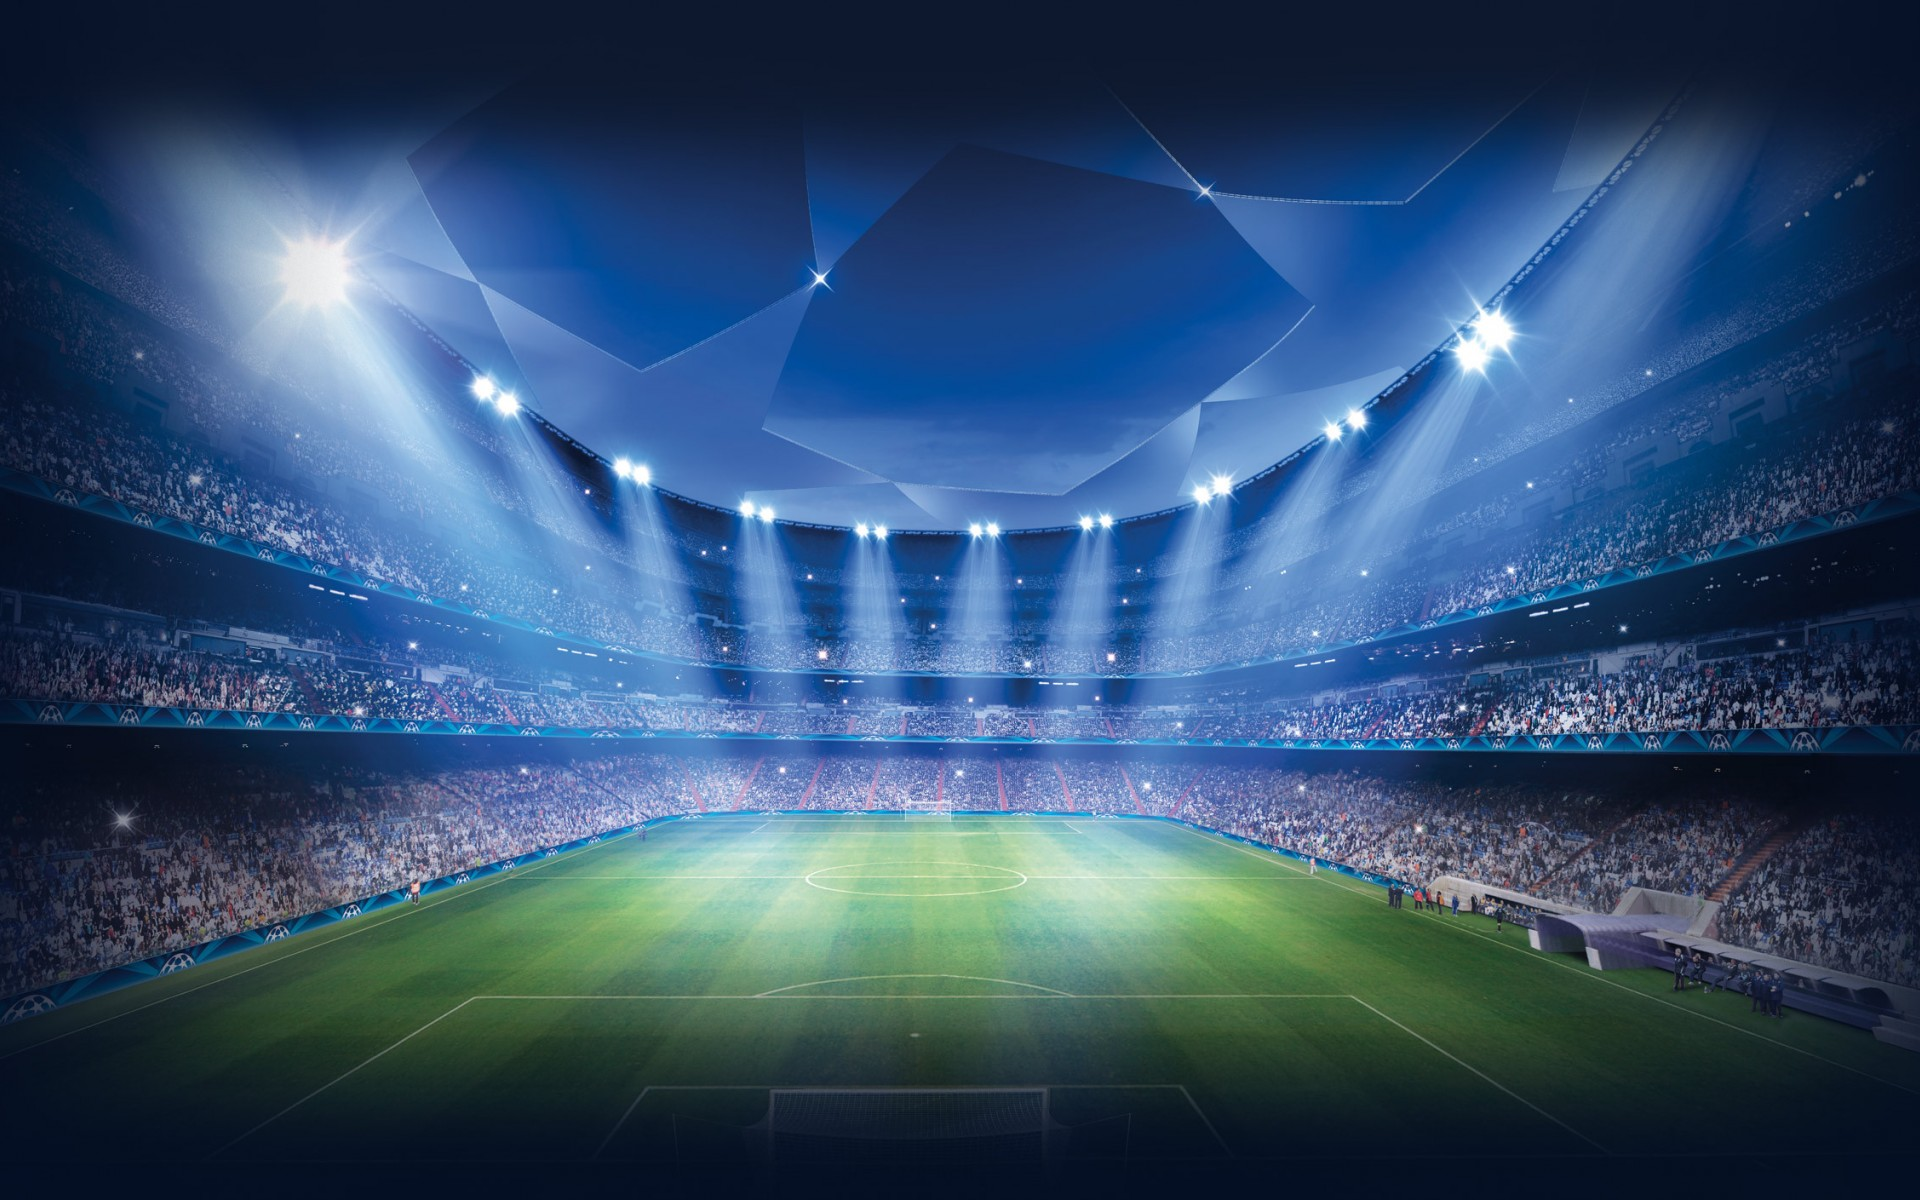 2014 UEFA Champions League Wallpaper 12732 Wallpaper Wallpaper hd 1920x1200